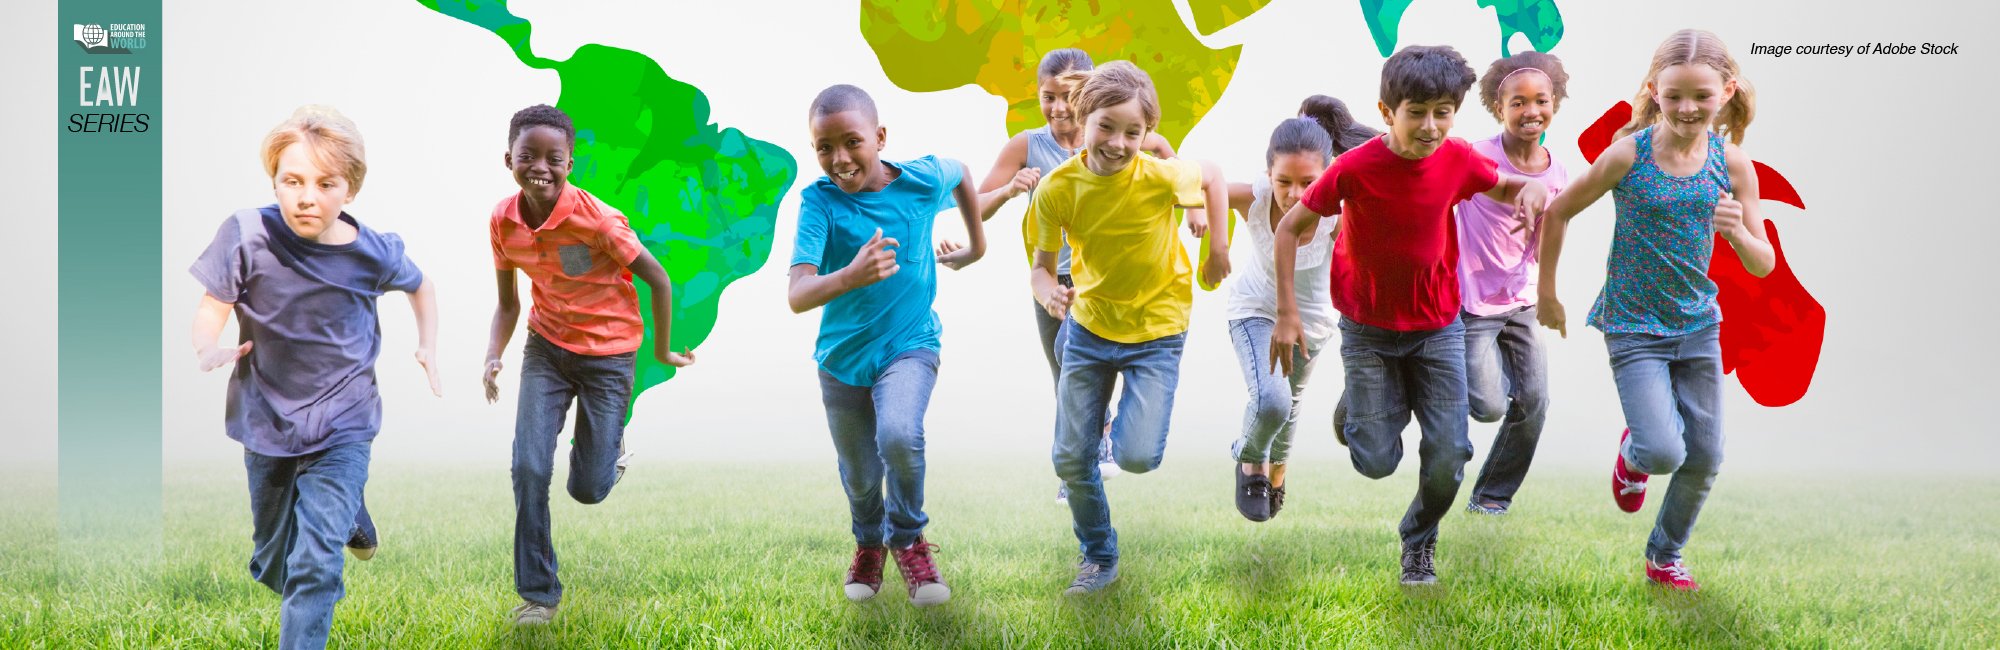 A group of kids is running on the grass; behind them is a colorful mural of the world map.